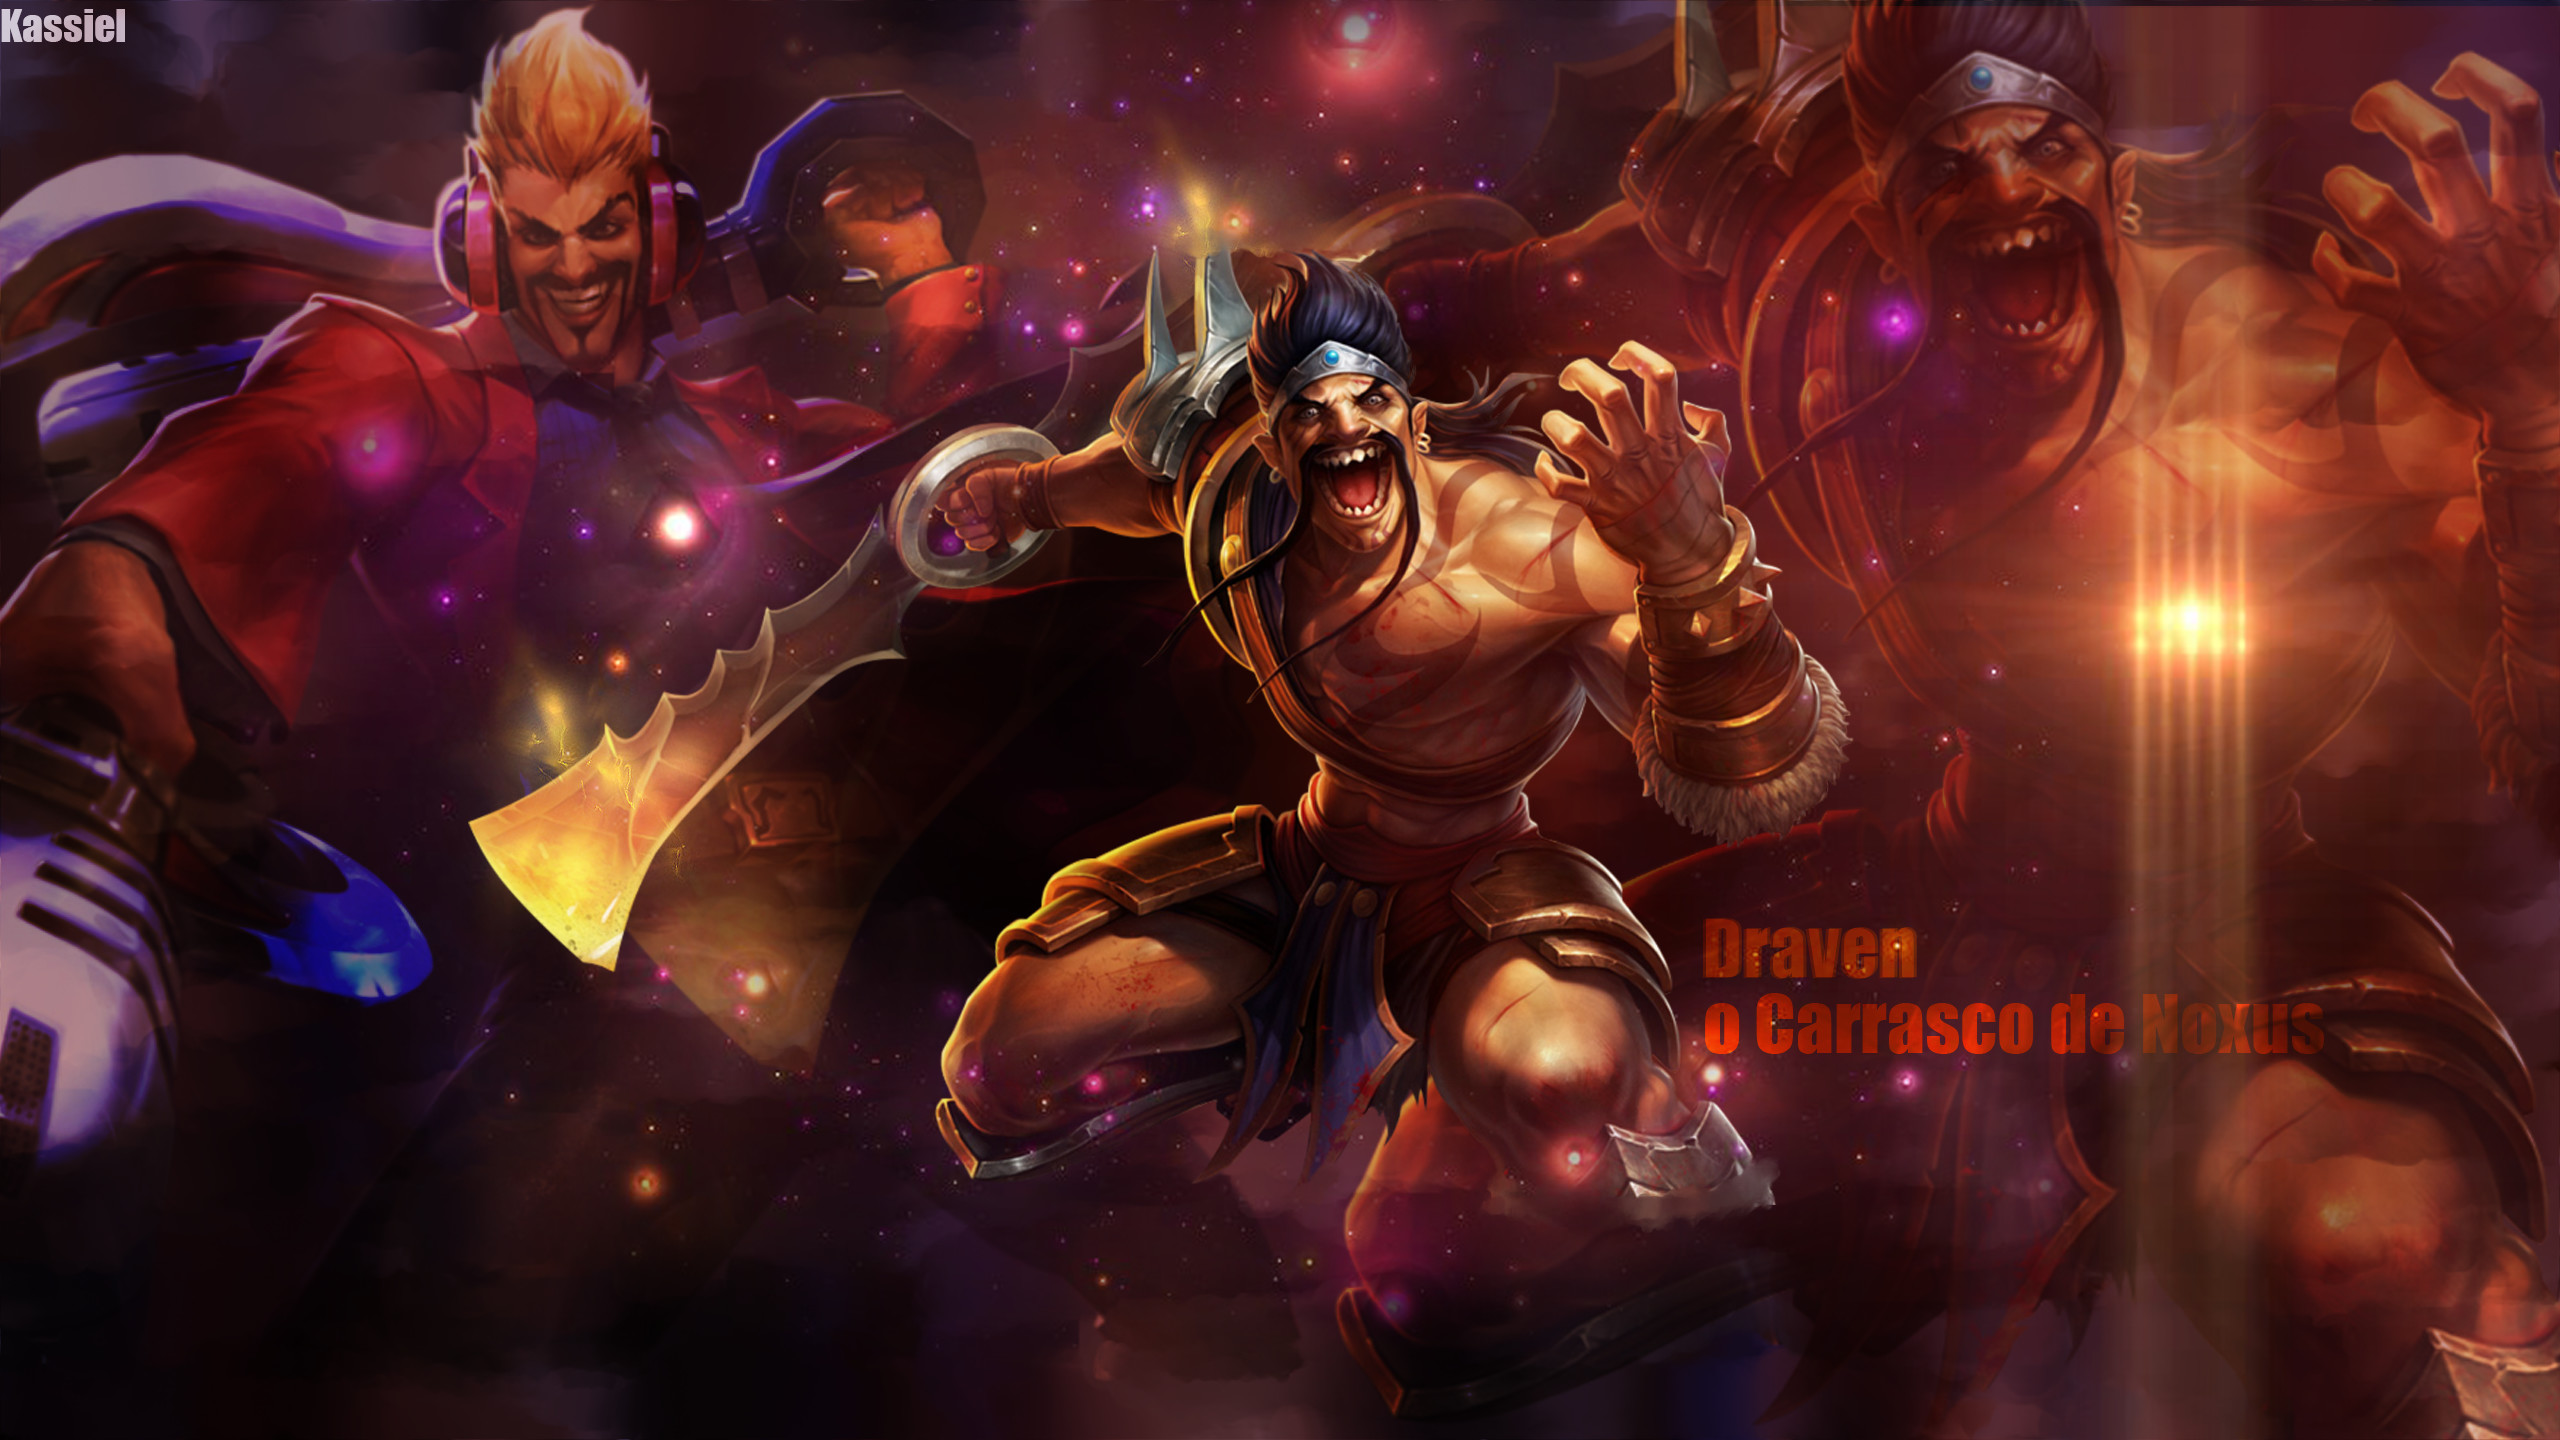 2560x1440 Draven, the Glorious Executioner Wallpaper - Draven, o Carrasco de Noxus  Wallpaper